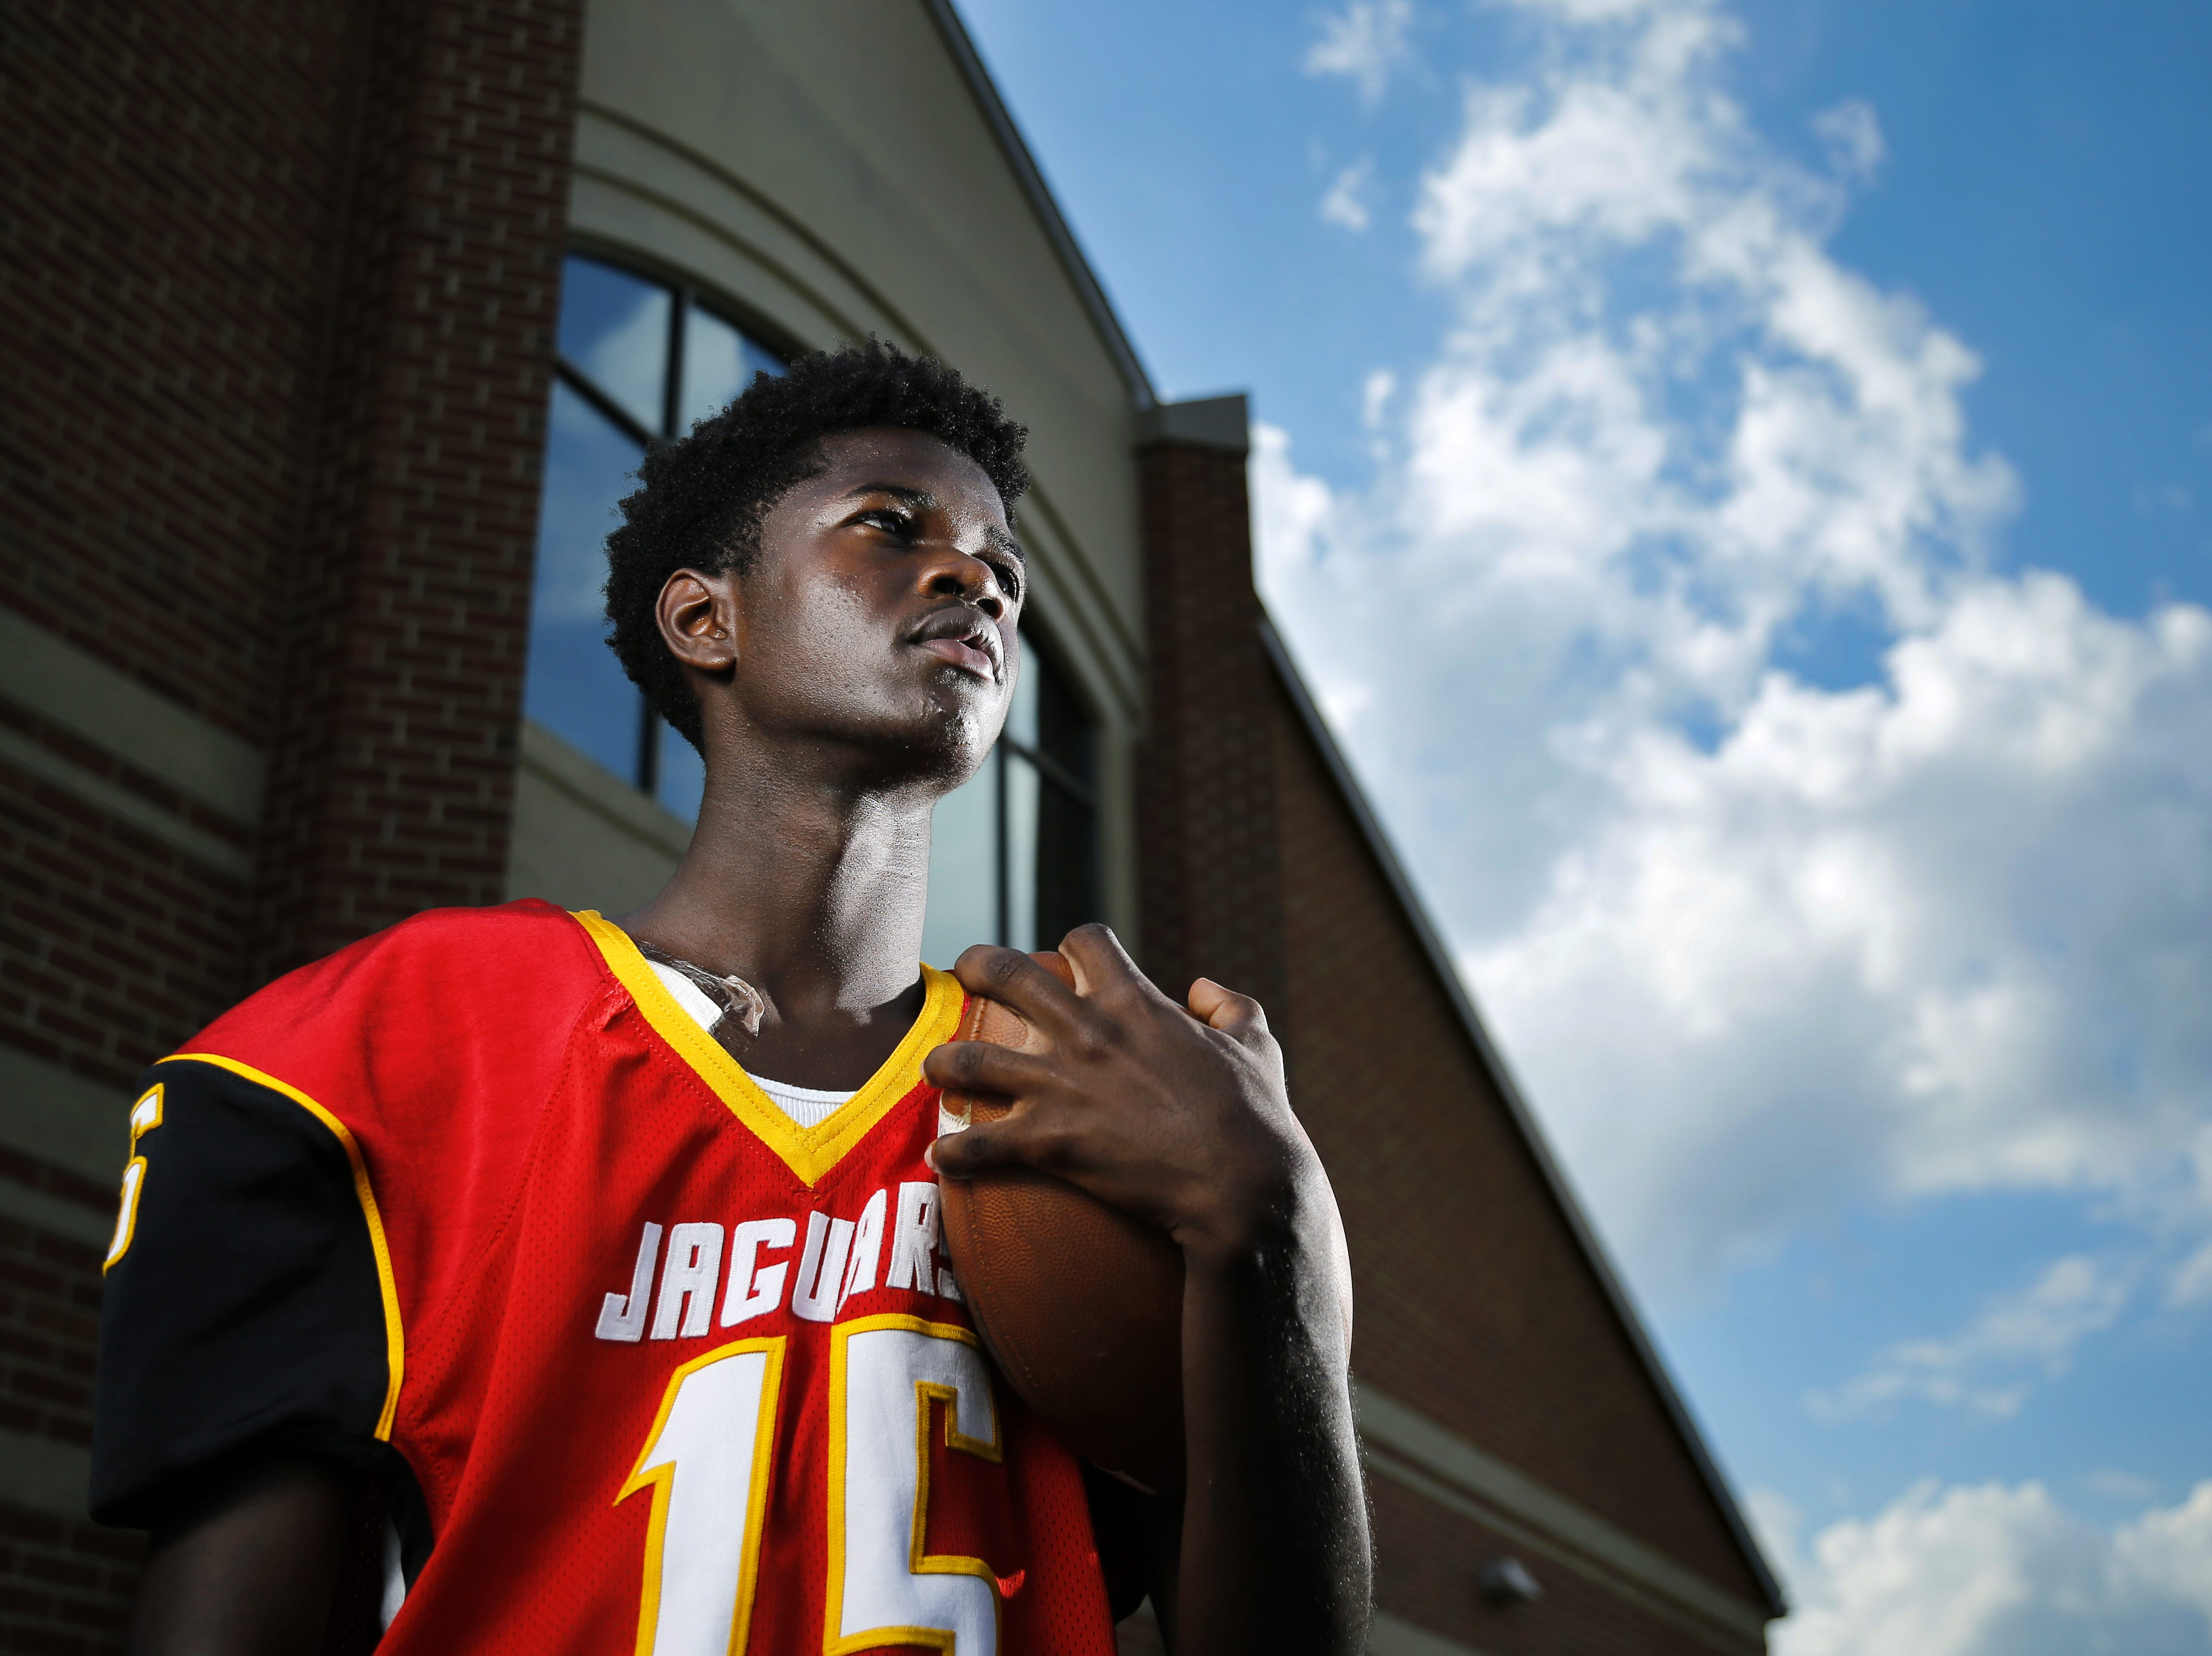 Schroder High School senior Mohammed Bah watches over practice as he poses for a portrait at Schroder High School in Cincinnati on Tuesday, Sept. 18, 2018. The senior kicker will miss the remainder of his senior season after breaking his shoulder on a special teams play.